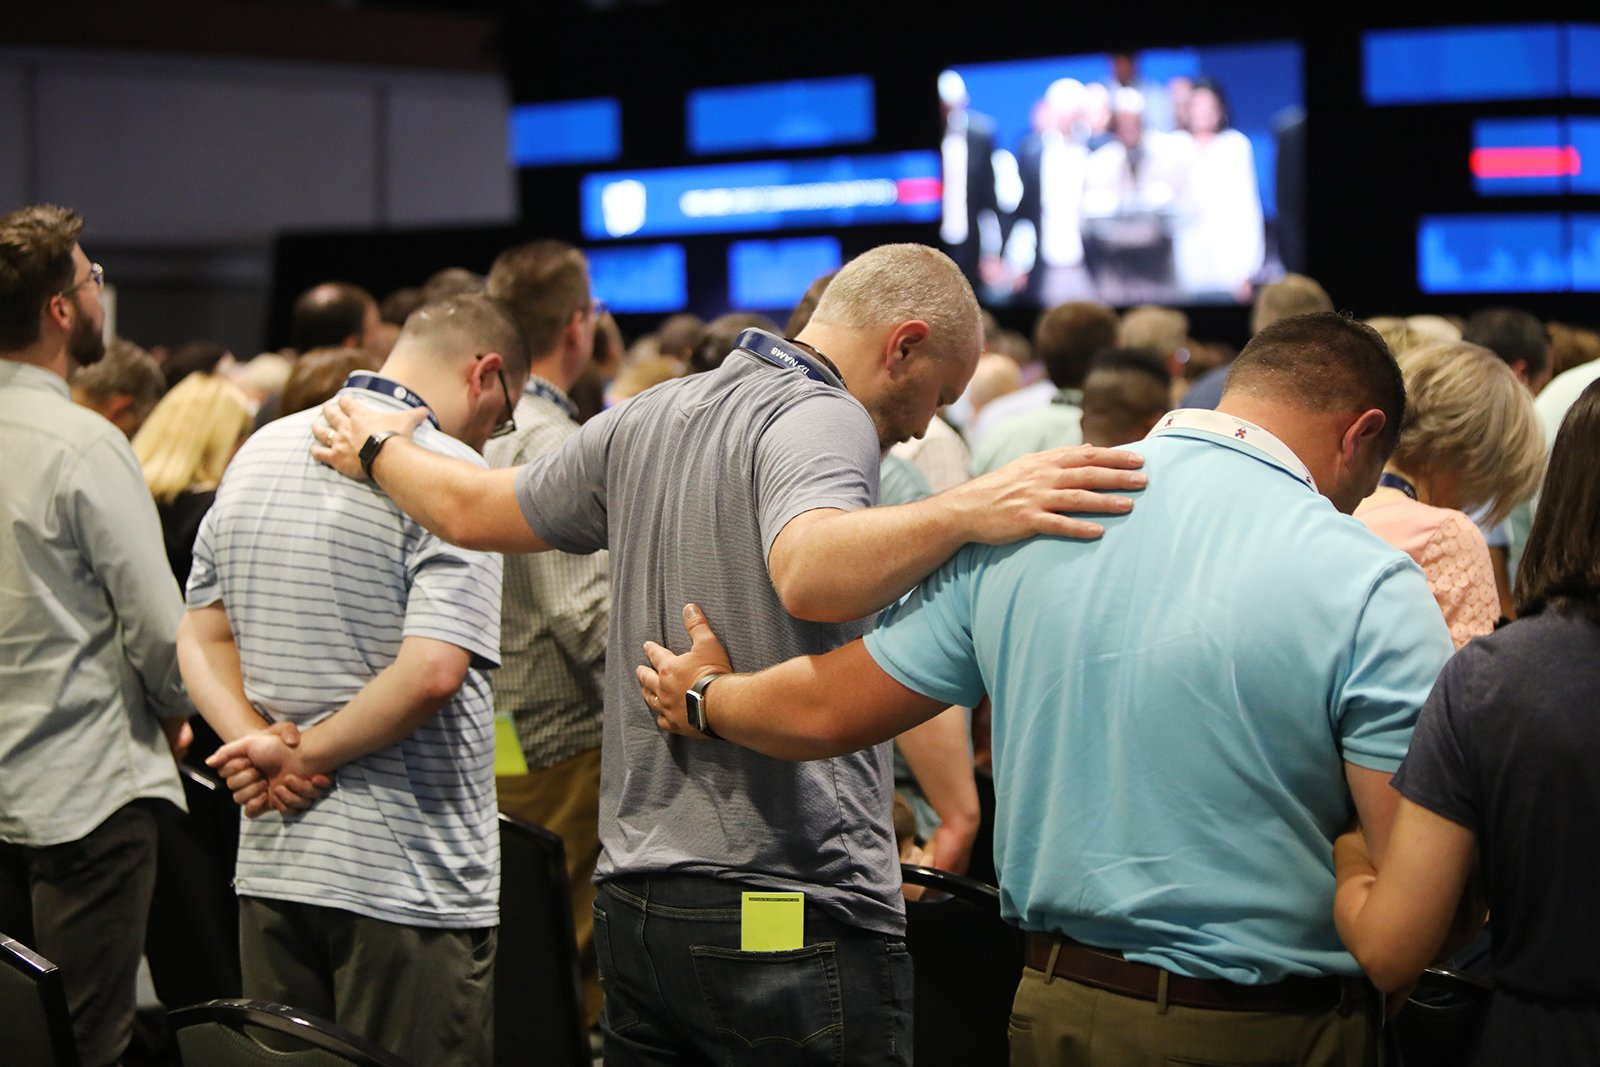 Messengers pray together during the annual meeting of the Southern Baptist Convention, Tuesday, June 15, 2021, at the Music City Center in Nashville. RNS photo by Kit Doyle